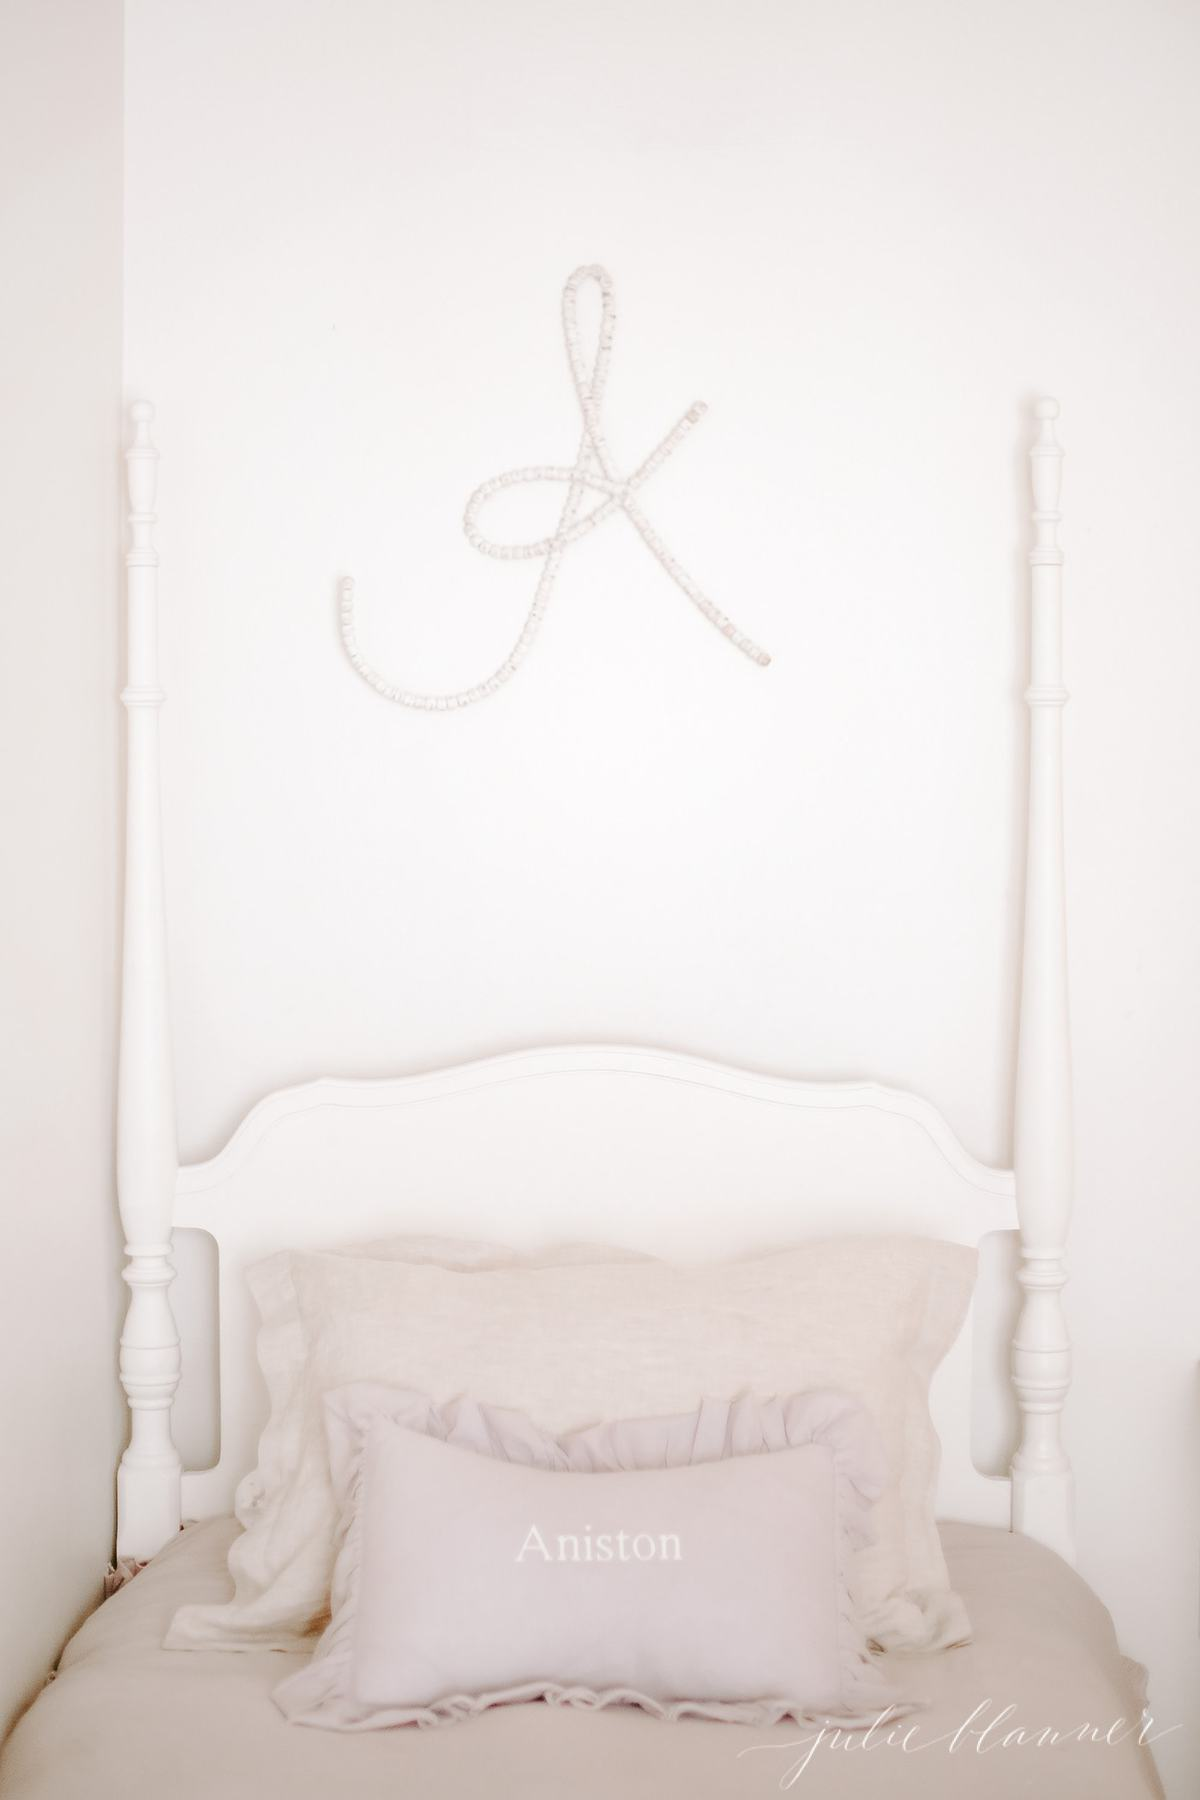 A white little girl's bedroom with a bed painted in furniture paint, and a large letter A over the bed.